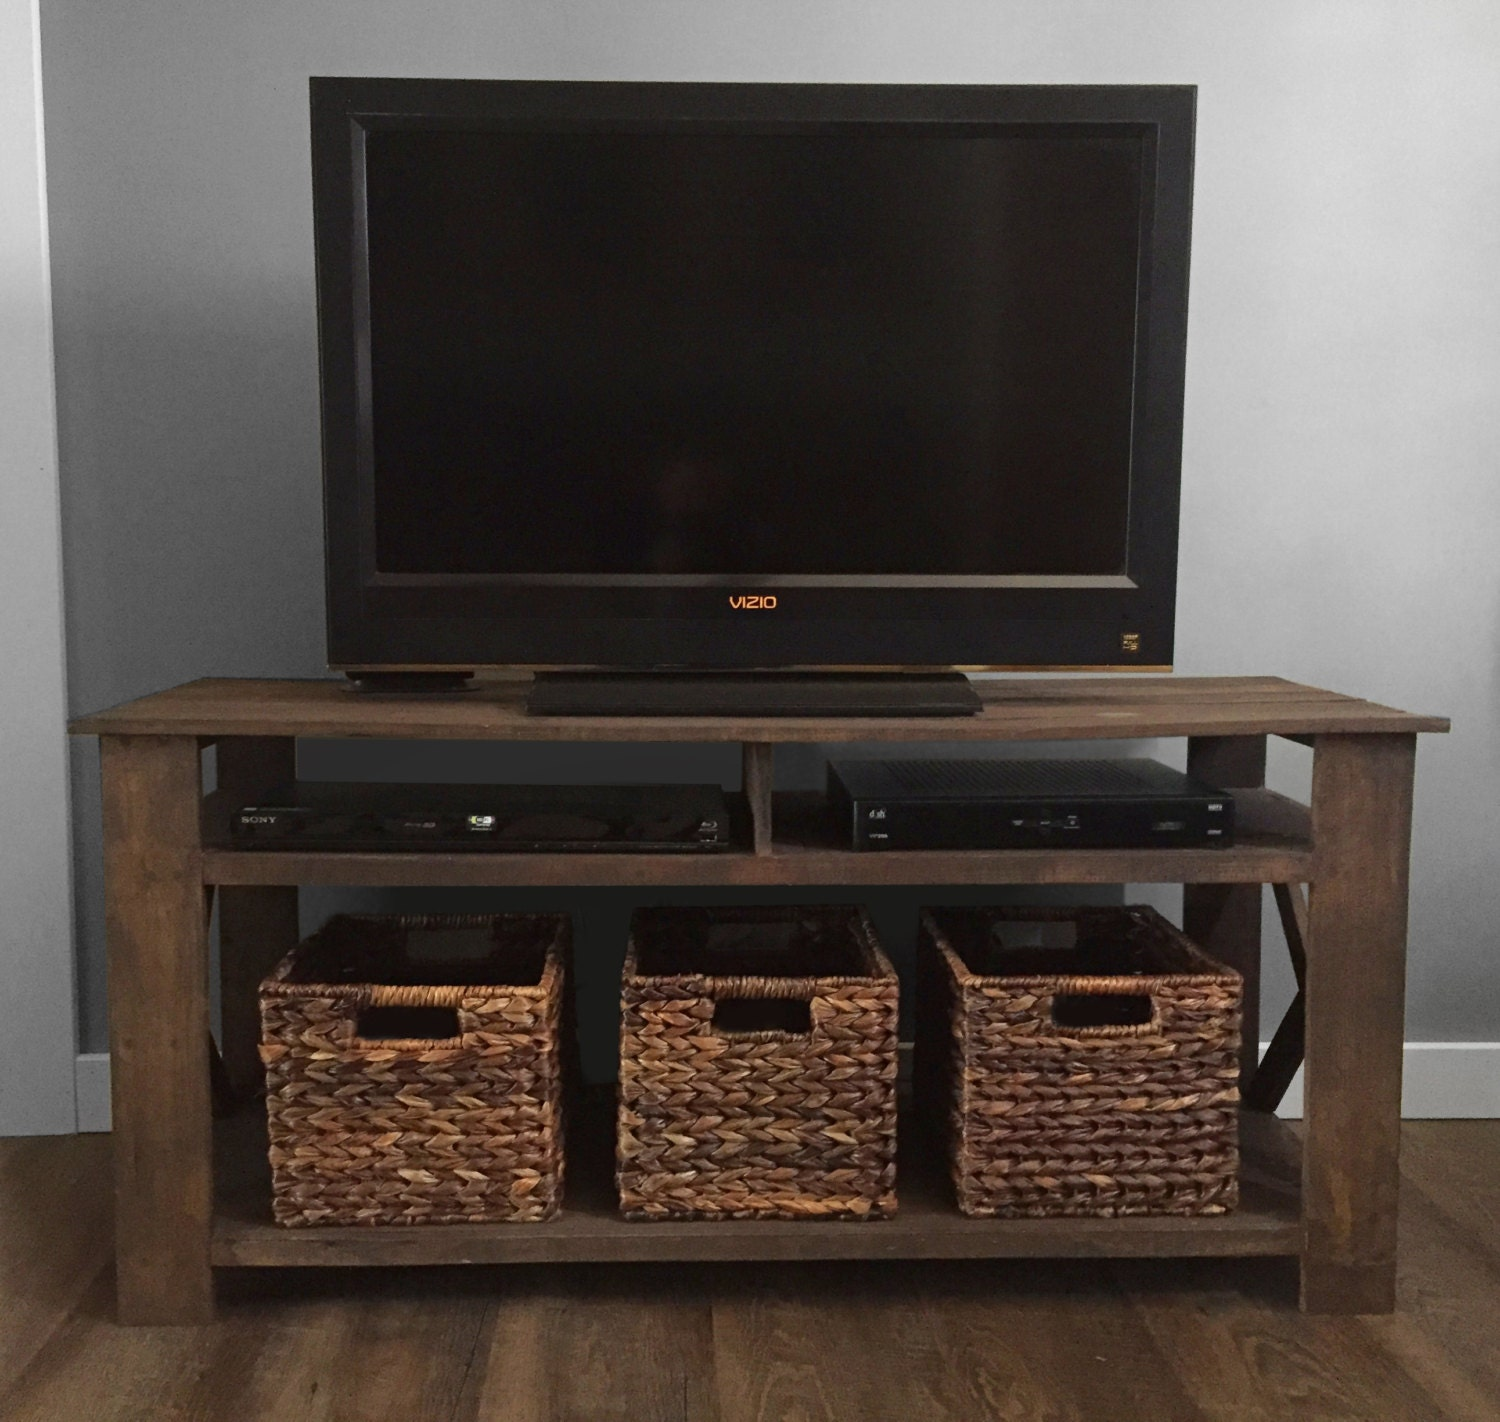 Diy Pallet Tv Stand Plans From Cahillscreative On Etsy Studio